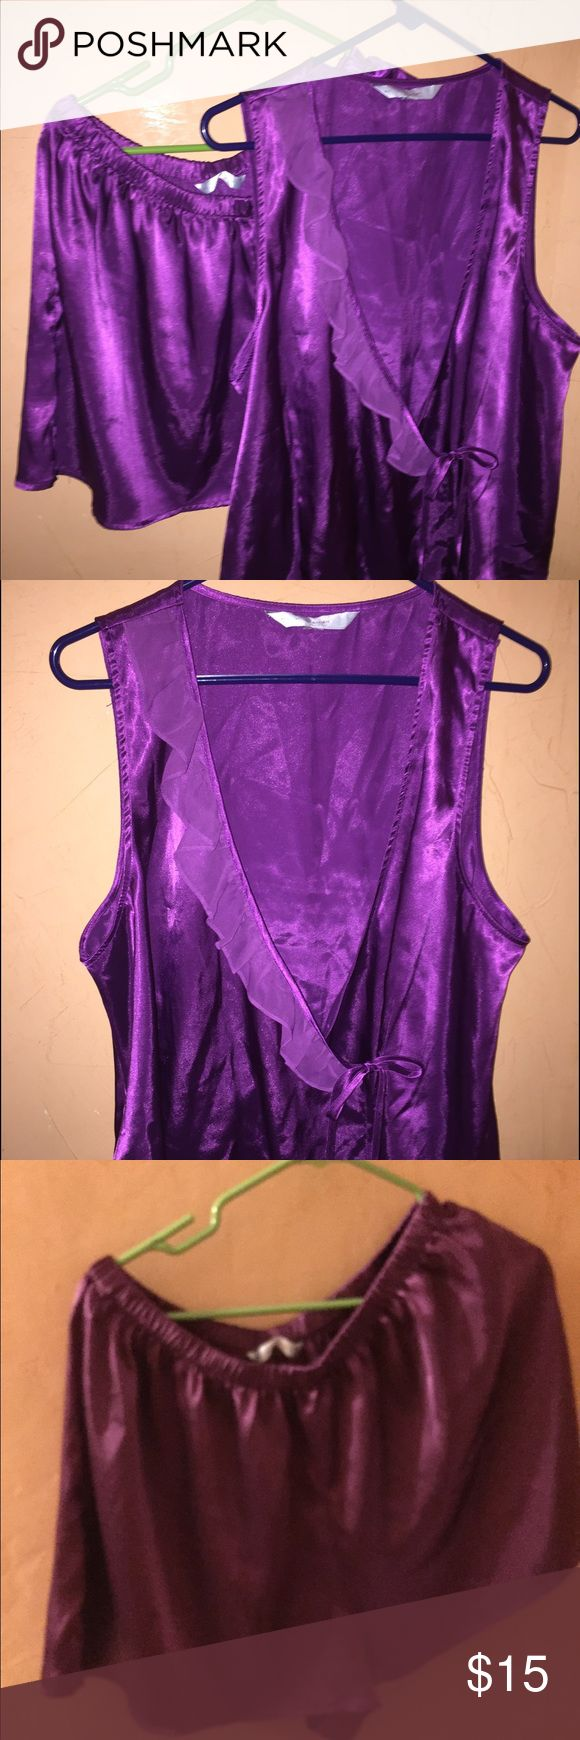 Lingerie size xxl top and short set Purple lingere set wrap top with inside button and tie closure with ruffle detail with shorts. carique Intimates & Sleepwear Pajamas